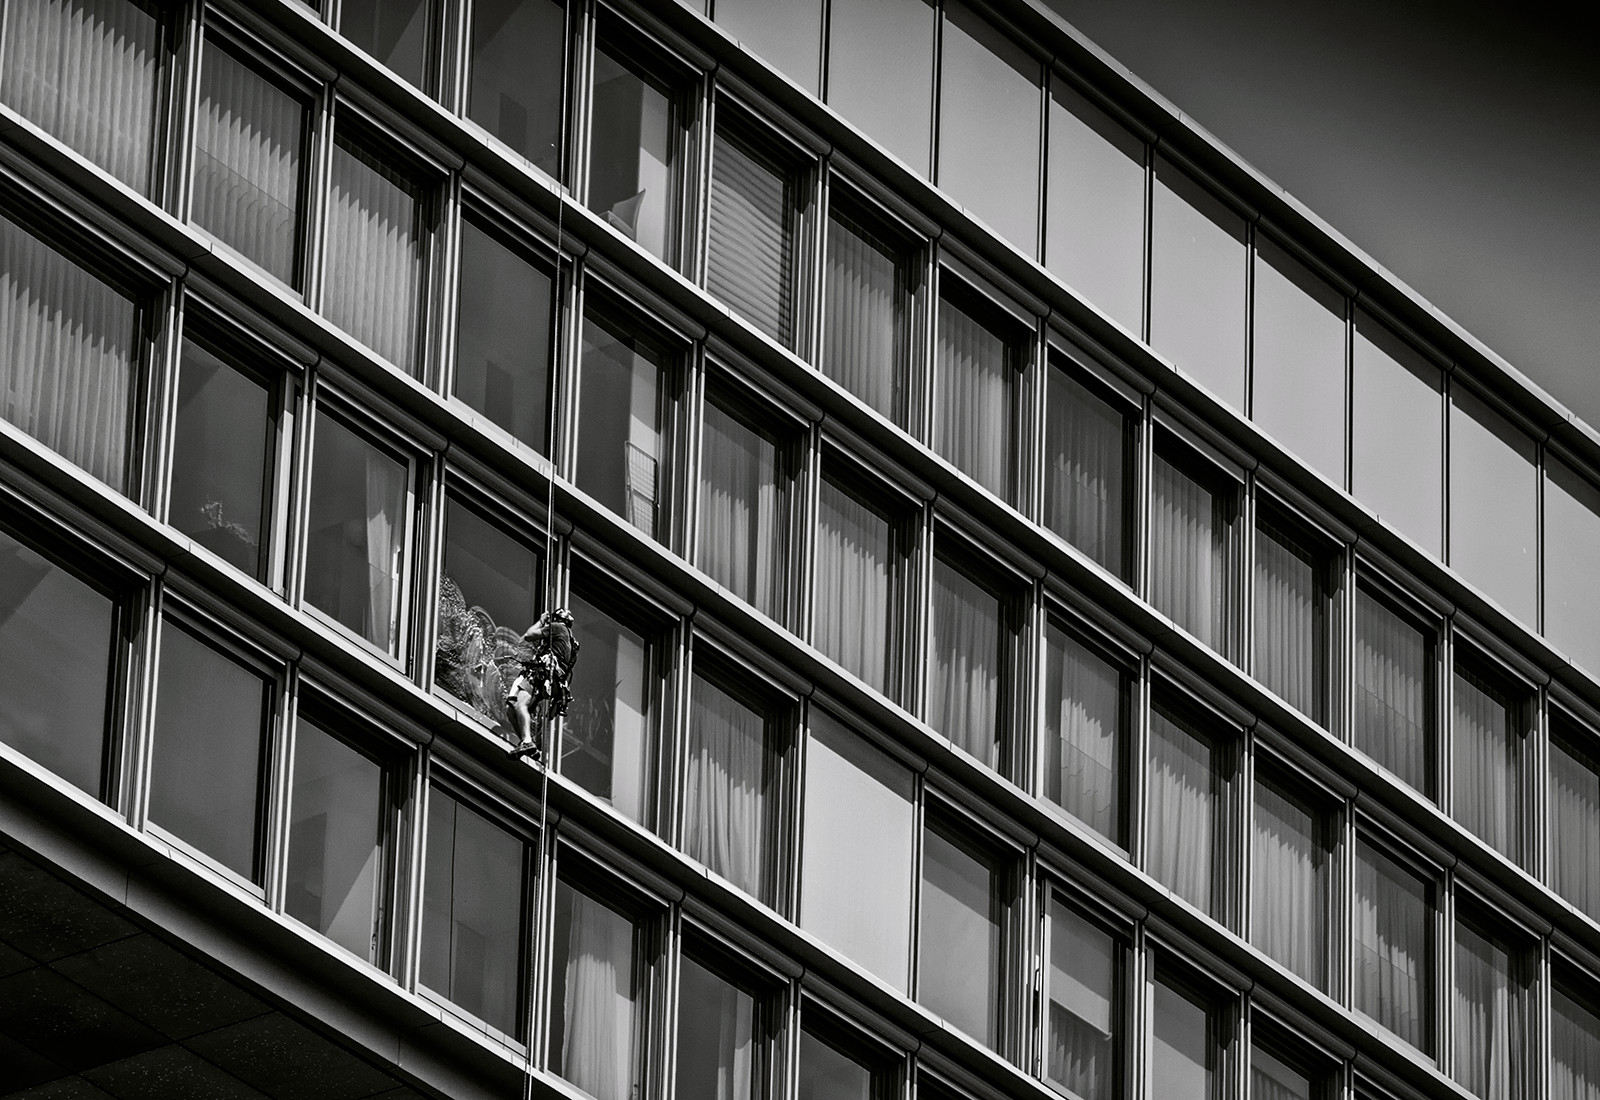 MONO - When Im Cleaning Windows - George Formby by Mark Davison (10 marks)